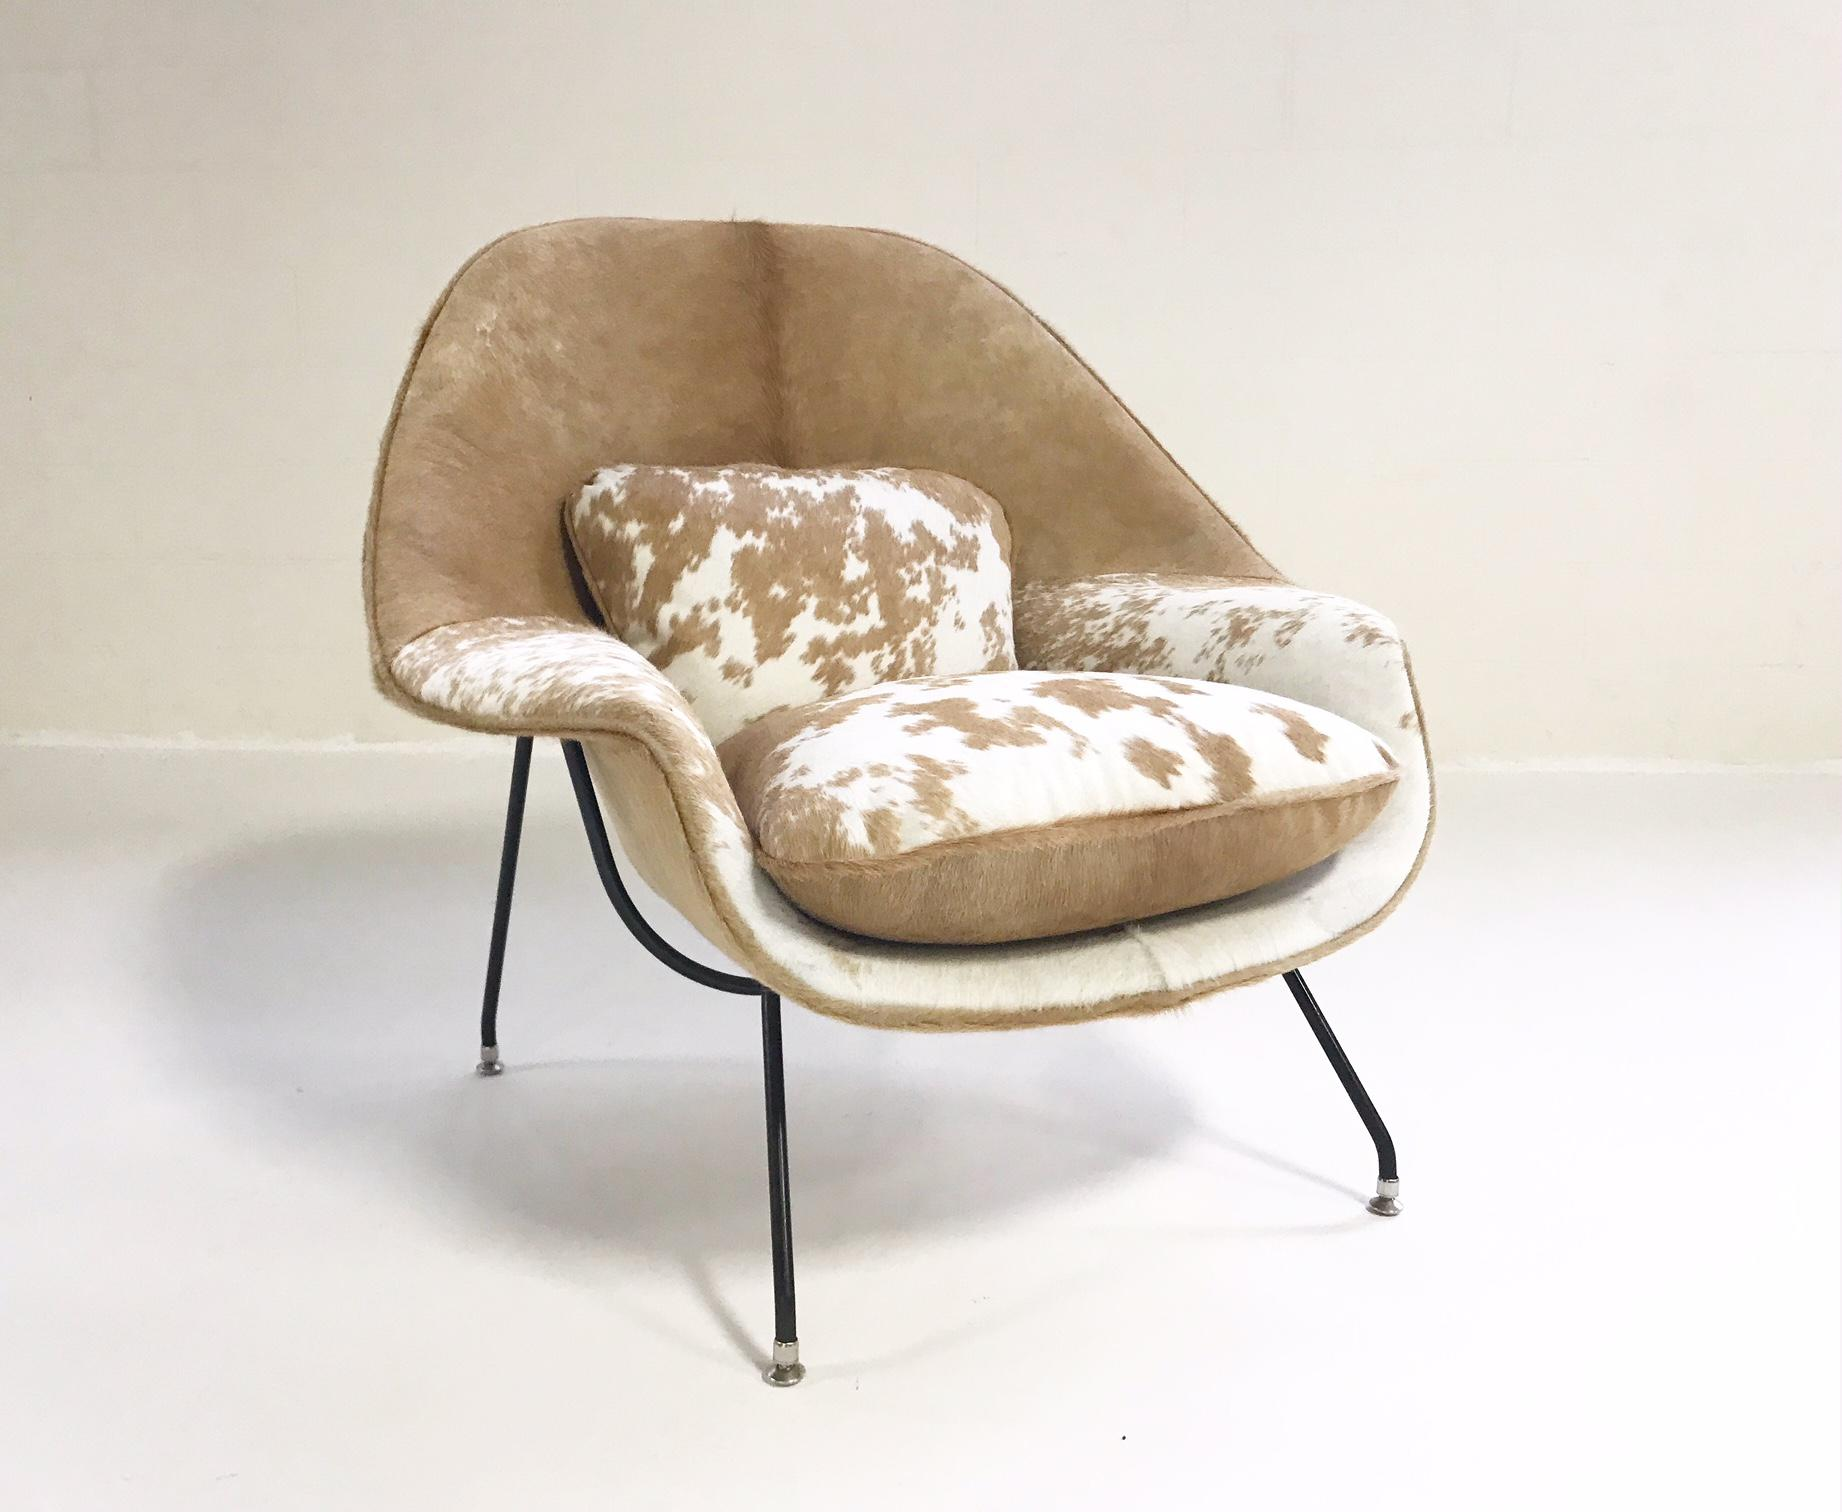 Forsyth Vintage Eero Saarinen Womb Chair Restored In Brazilian Cowhide For  Sale   Image 9 Of